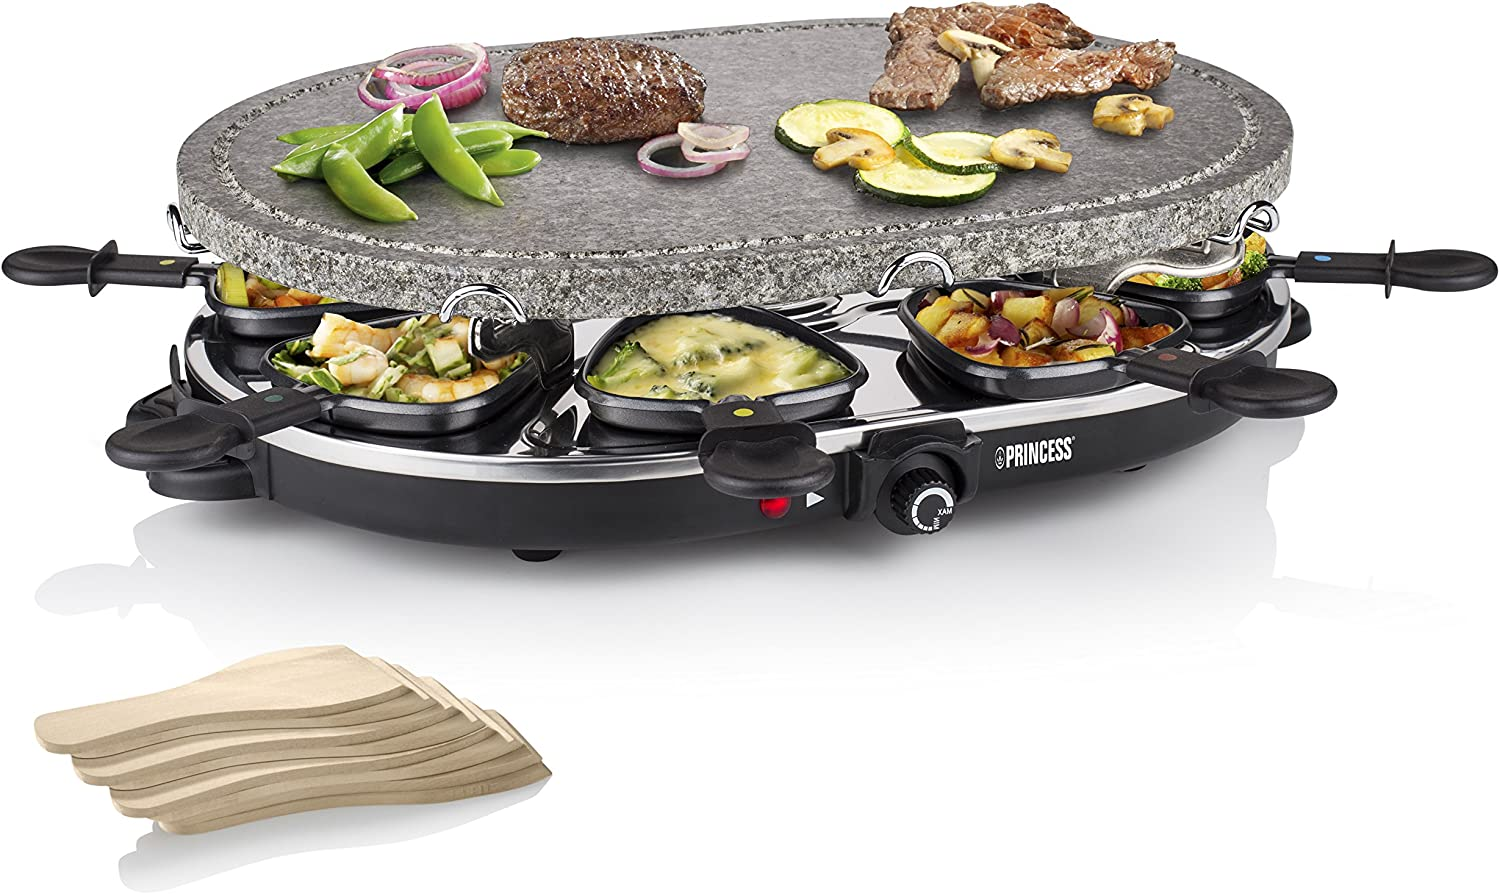 Princess 162720 - Parrilla para 8 Personas, Piedra Oval y Raclette Party